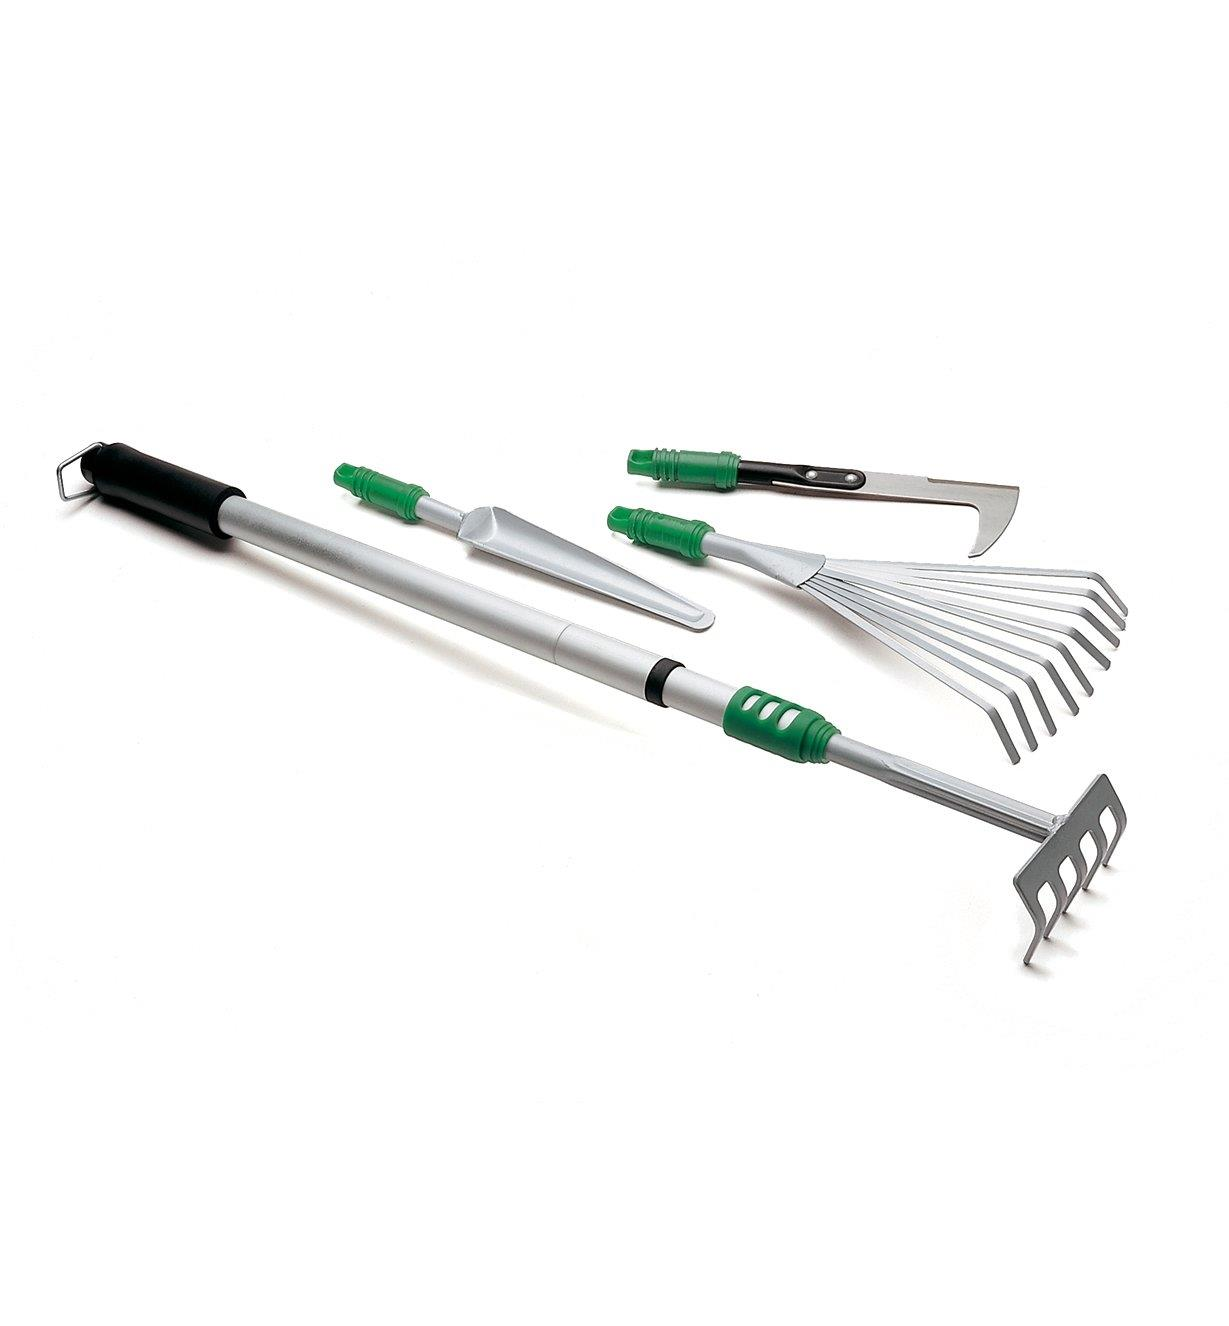 Telescoping Tool Set